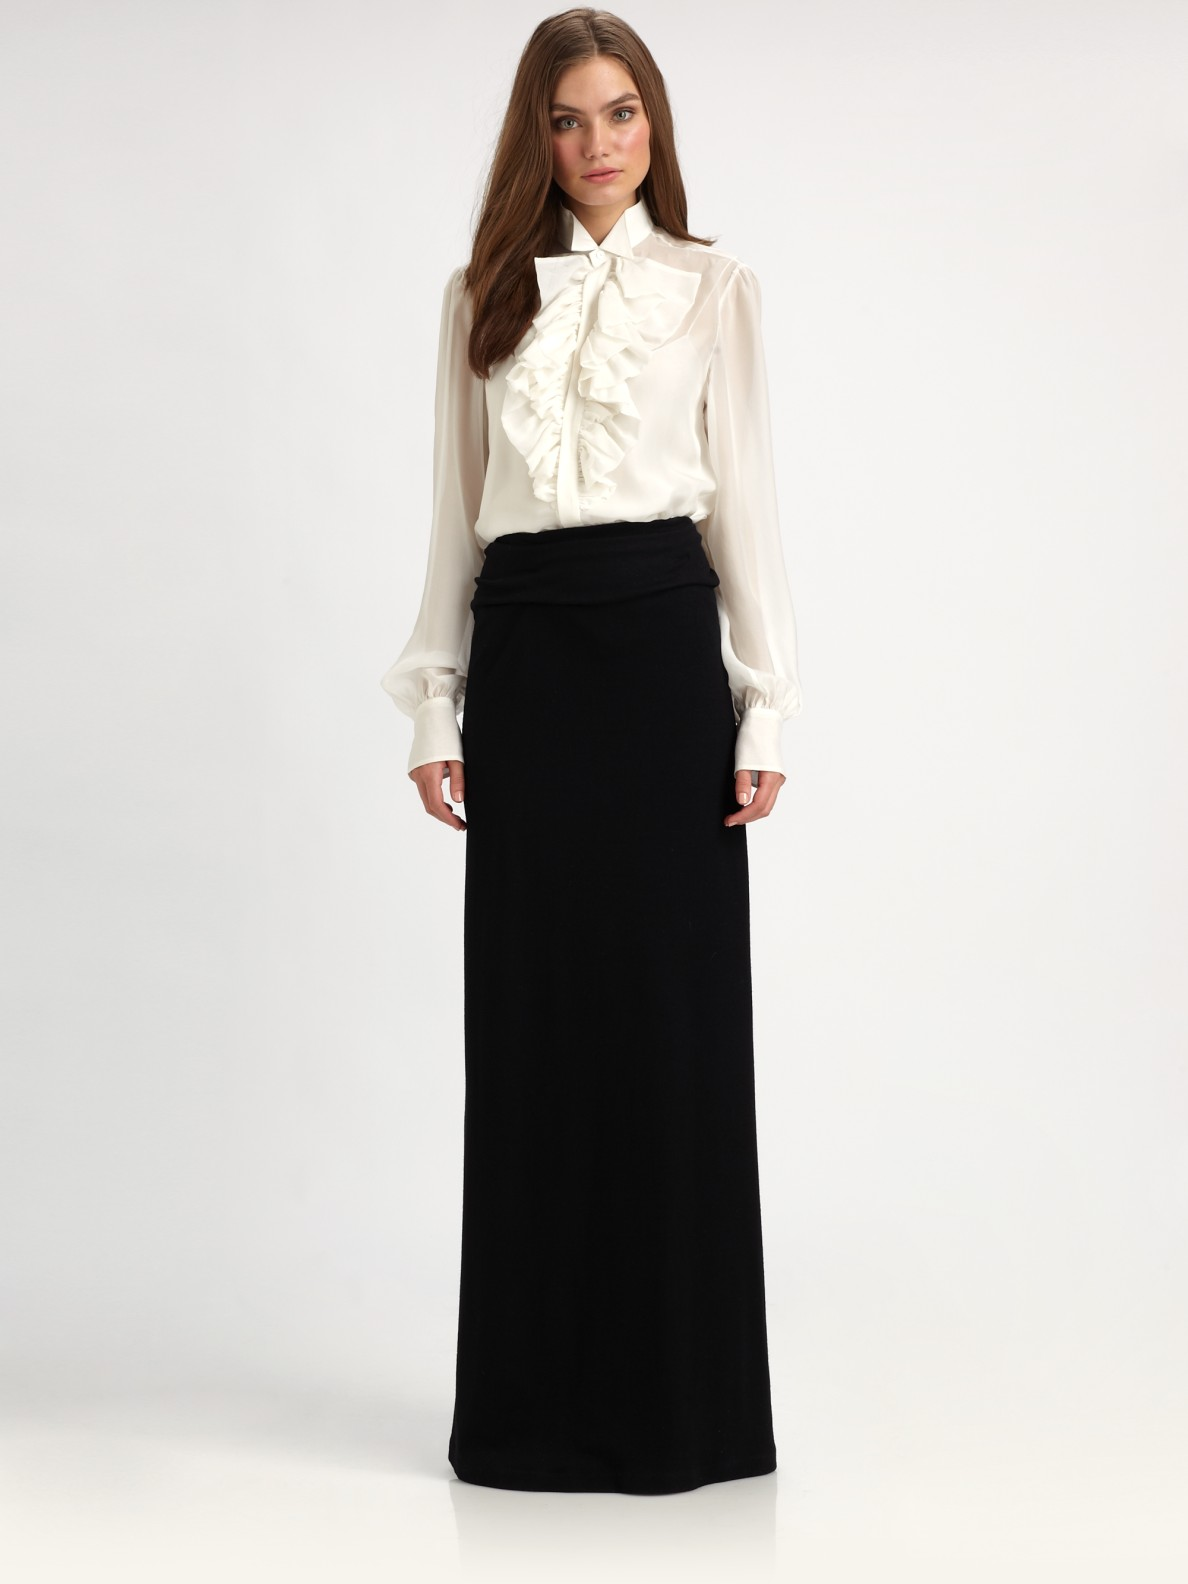 Ralph lauren blue label Morgan Wool Knit Maxi Skirt in Black | Lyst